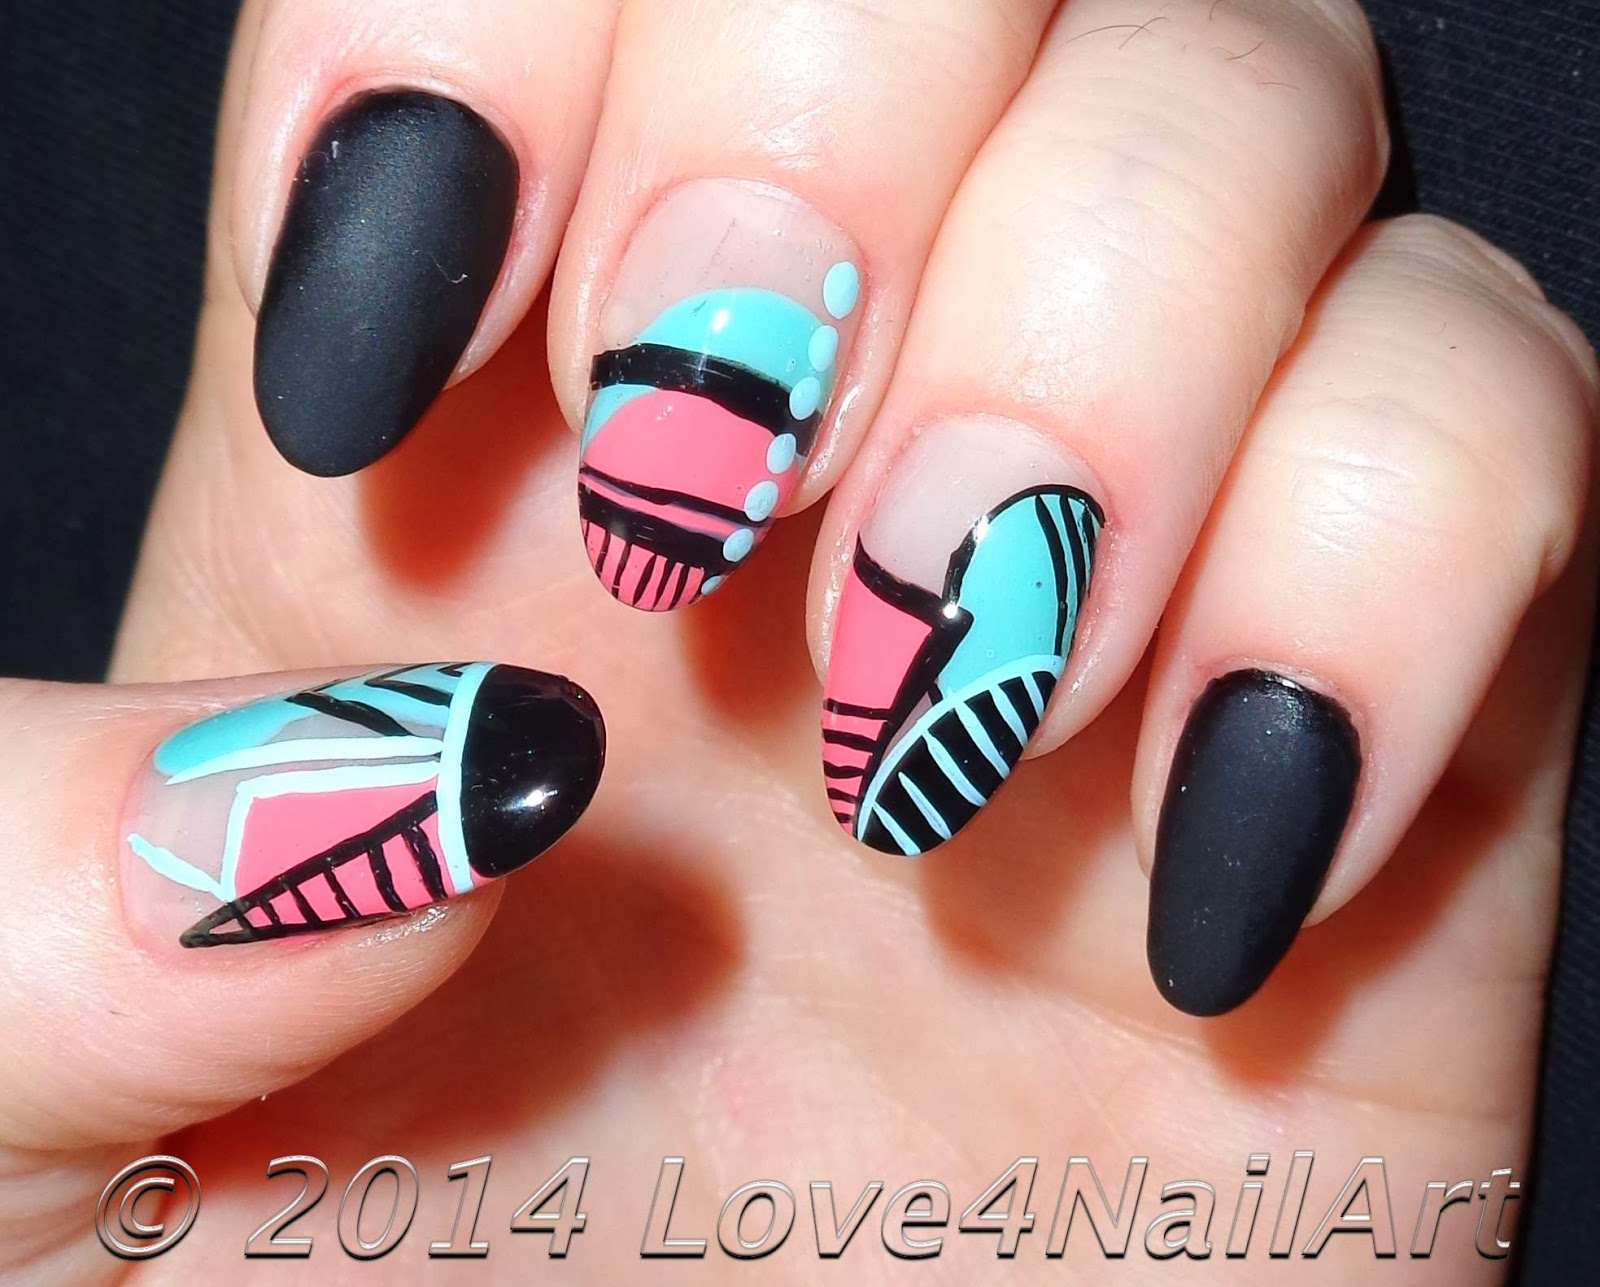 Love4NailArt: Spring Time Geometric Oval Acrylic Nails (Re-Creation)